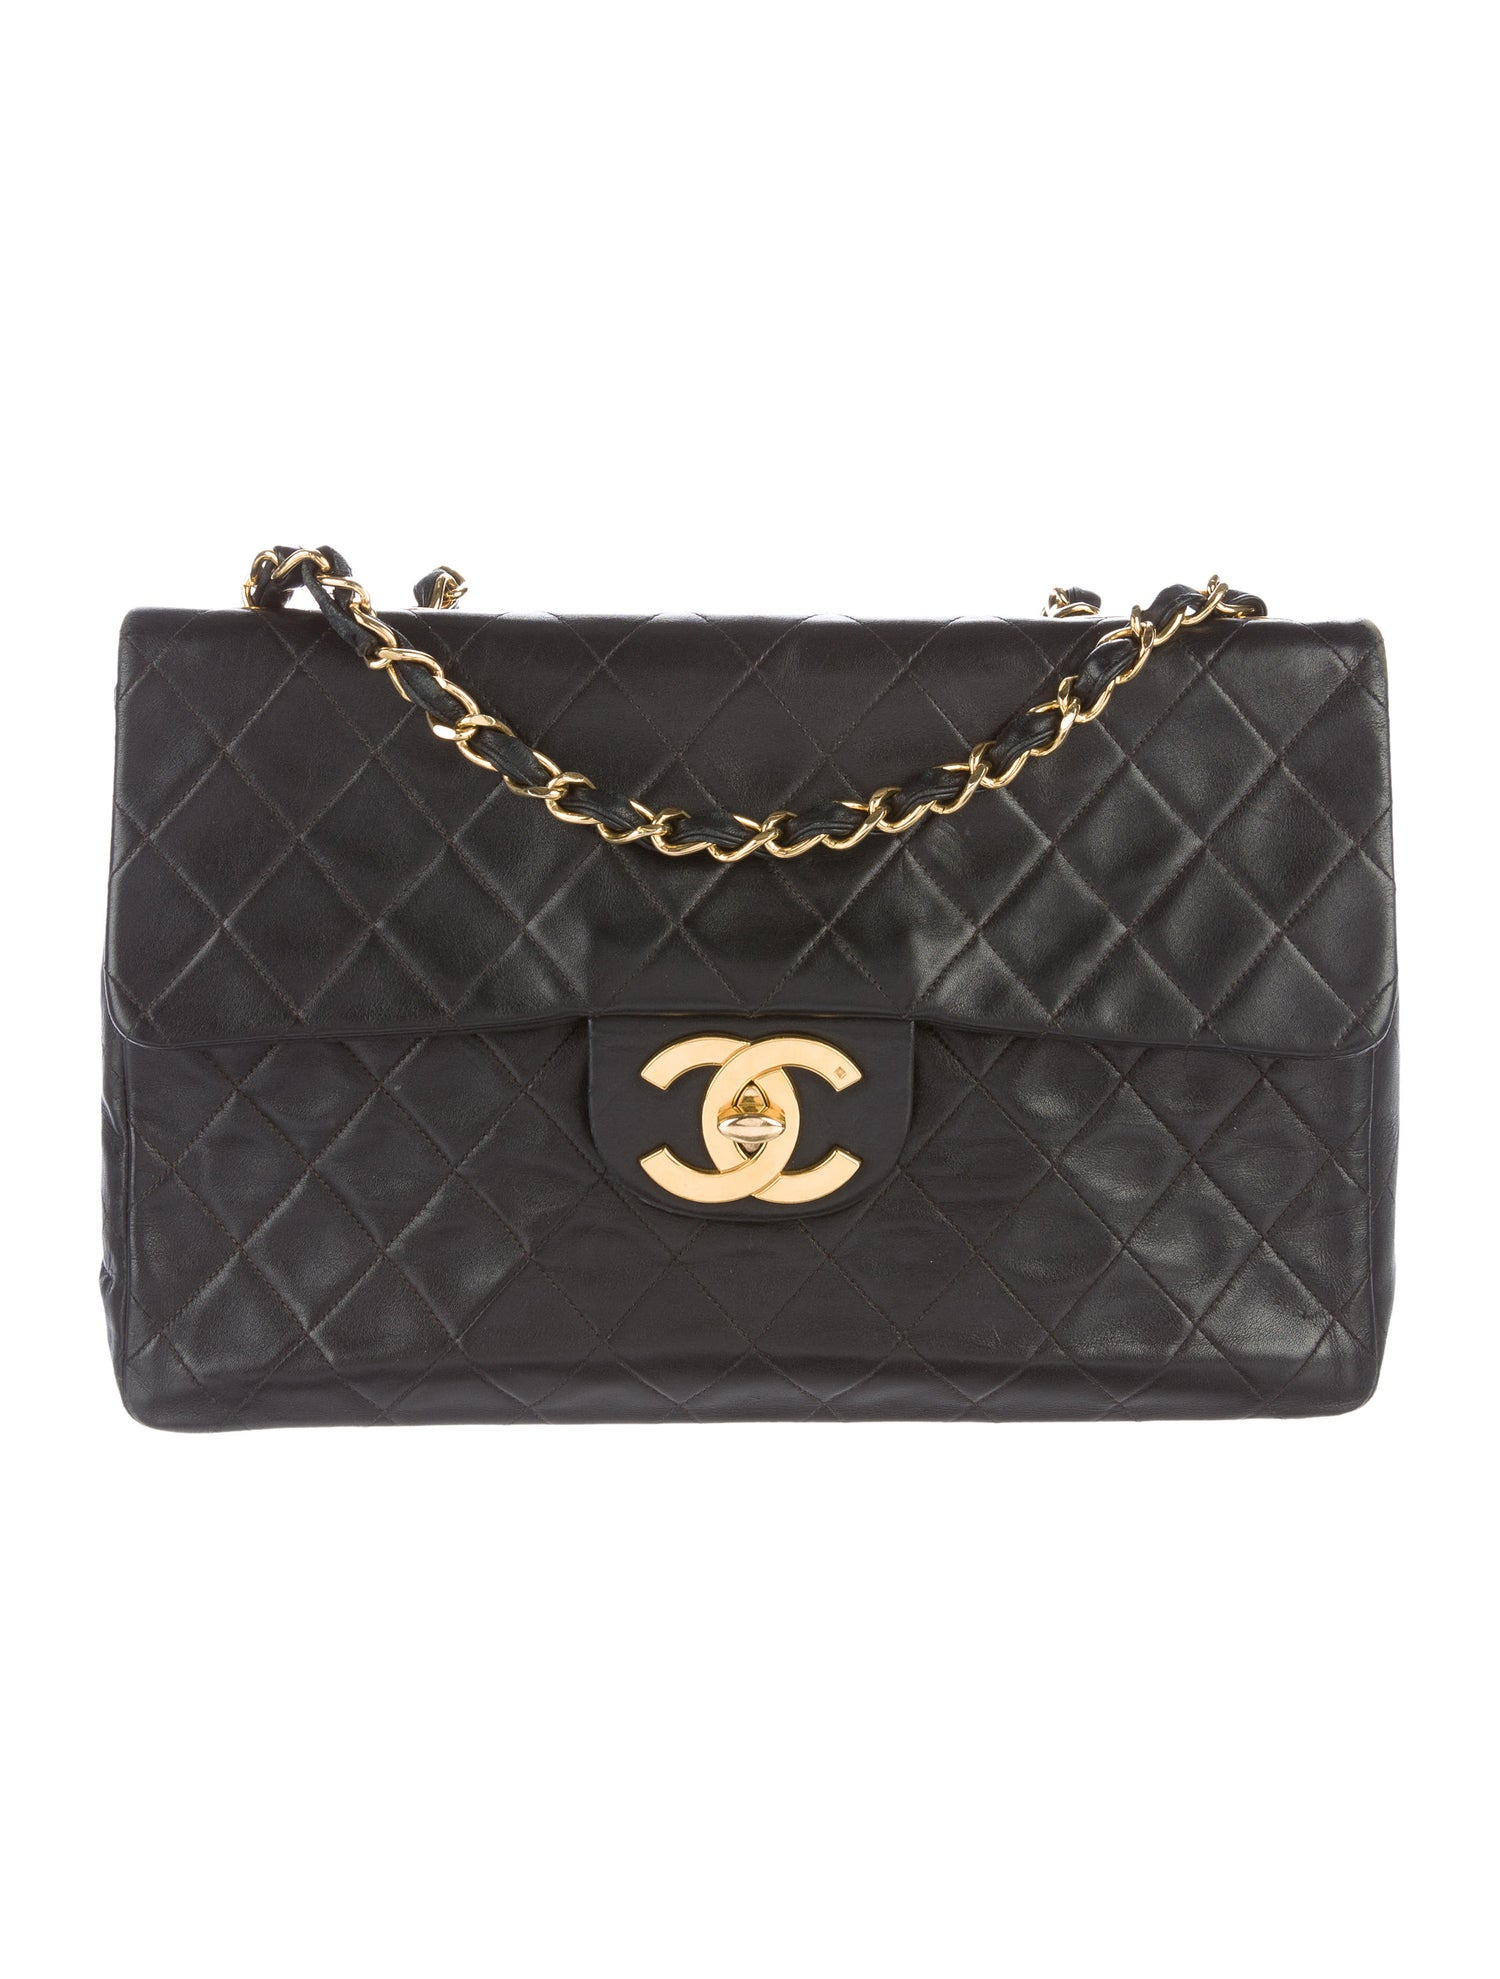 Jumbo XL Maxi Flap Bag by Chanel, available on therealreal.com for $2900 Olivia Culpo Bags Exact Product